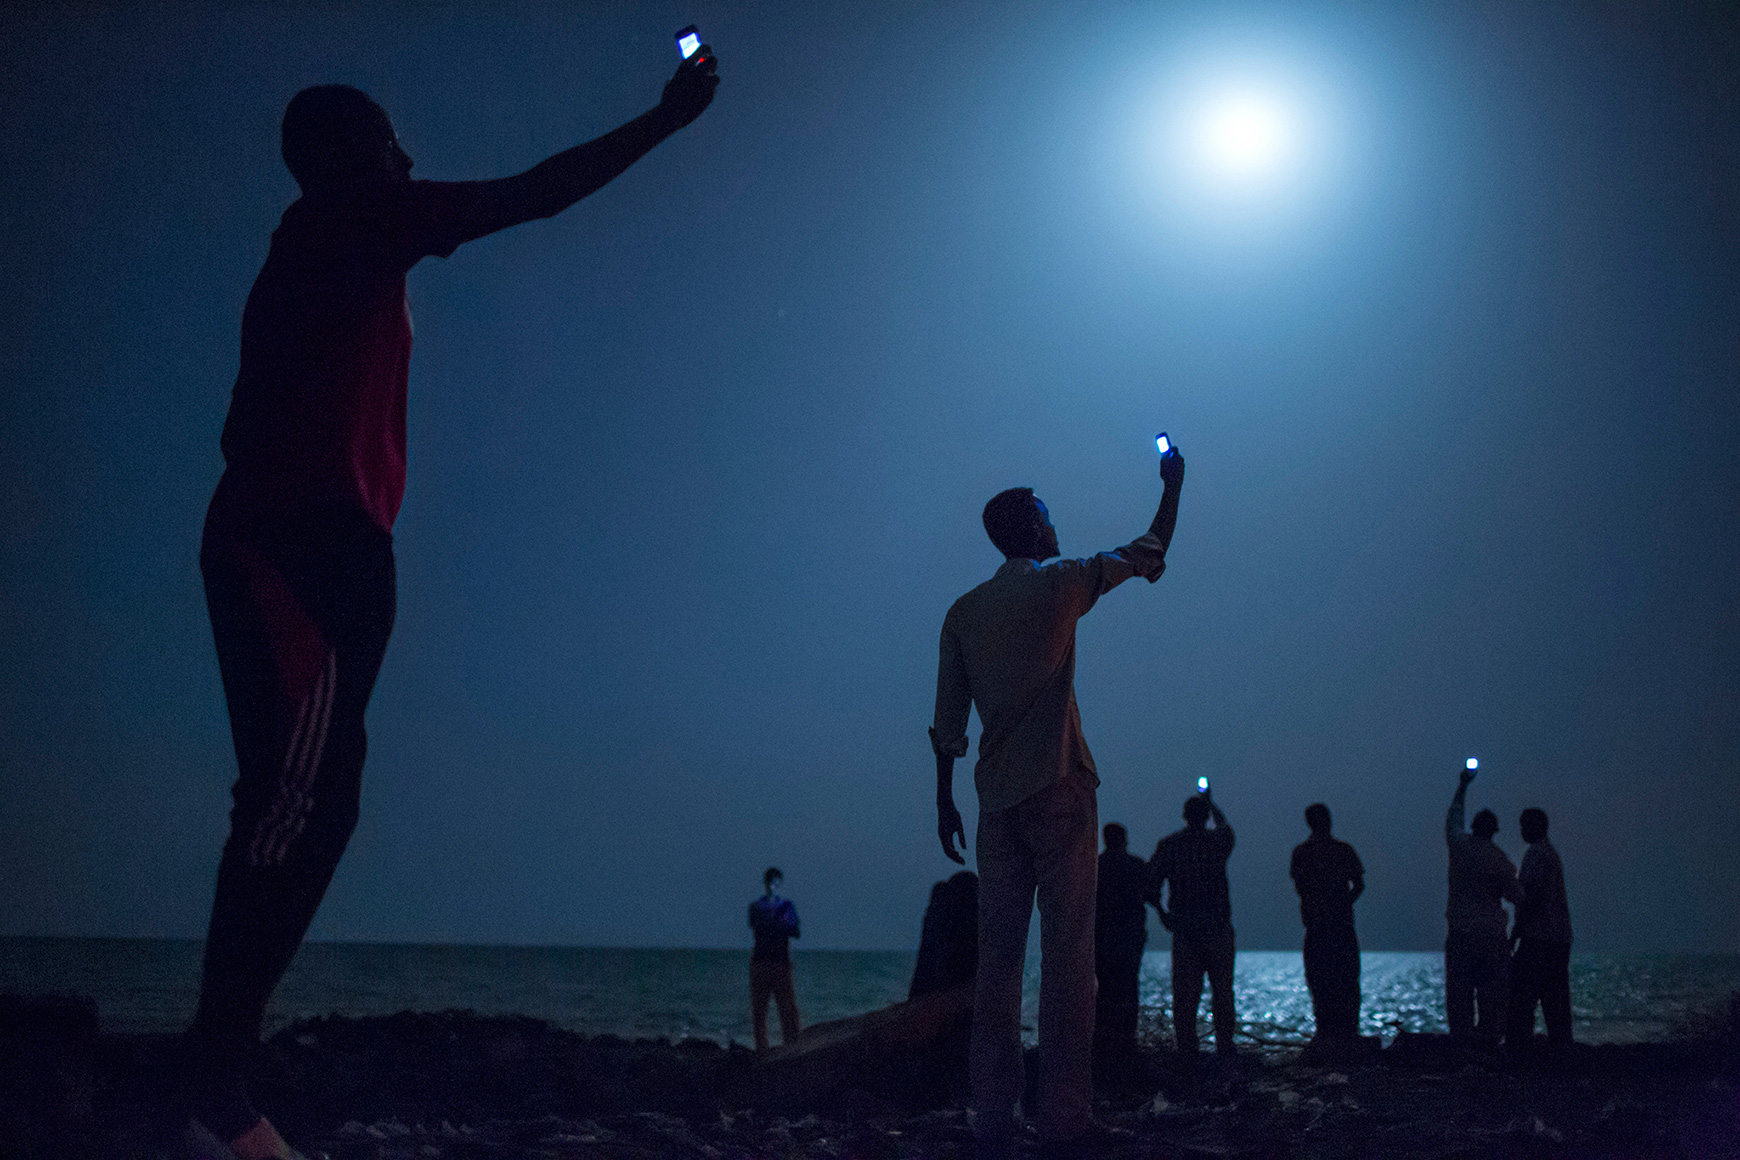 World Press Photo 2013 - John Stanmeyer - VII - National Geographic